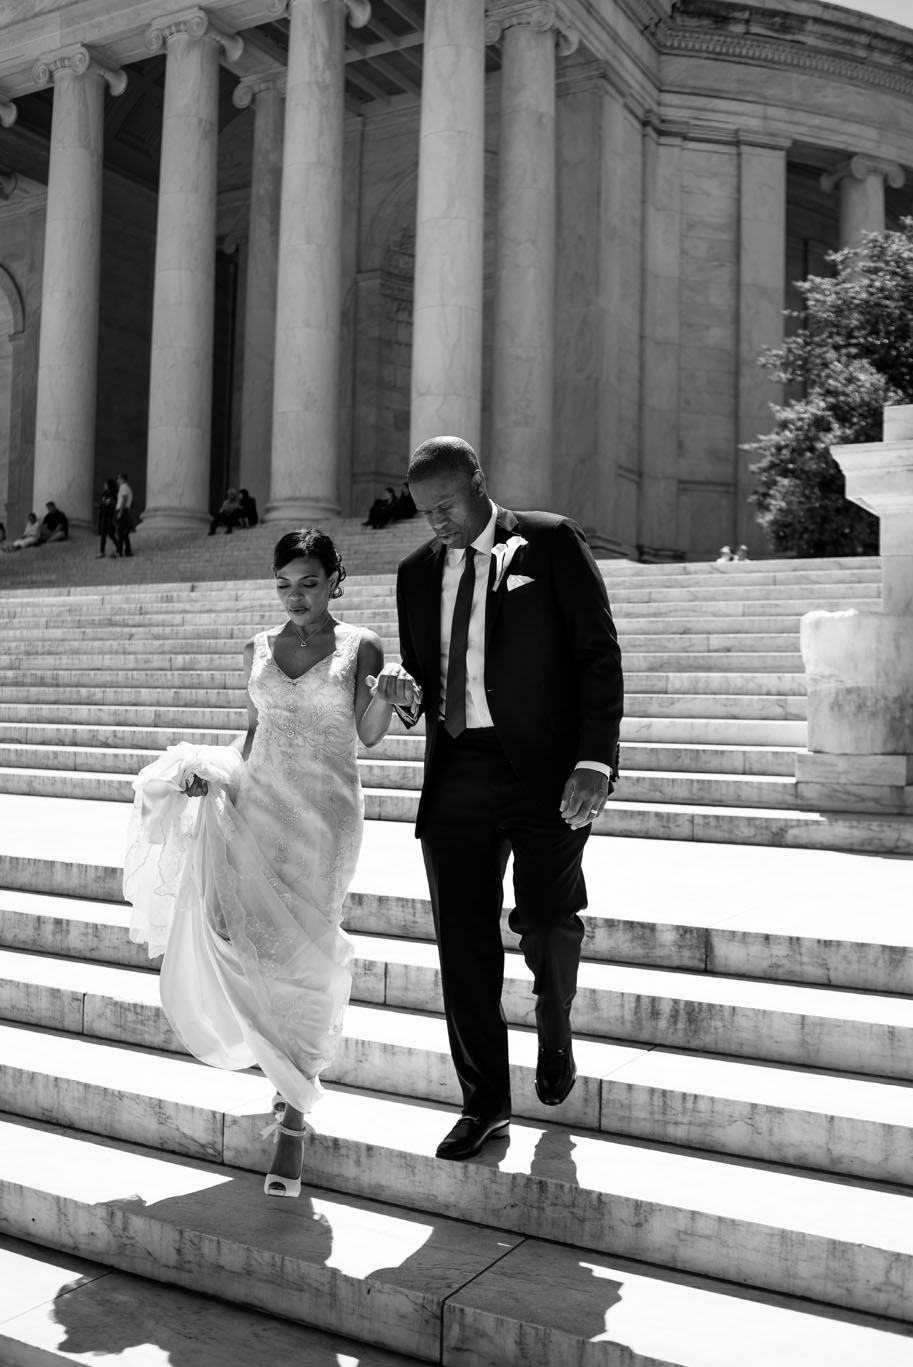 The Madious Wedding Photography DC couple descending steps